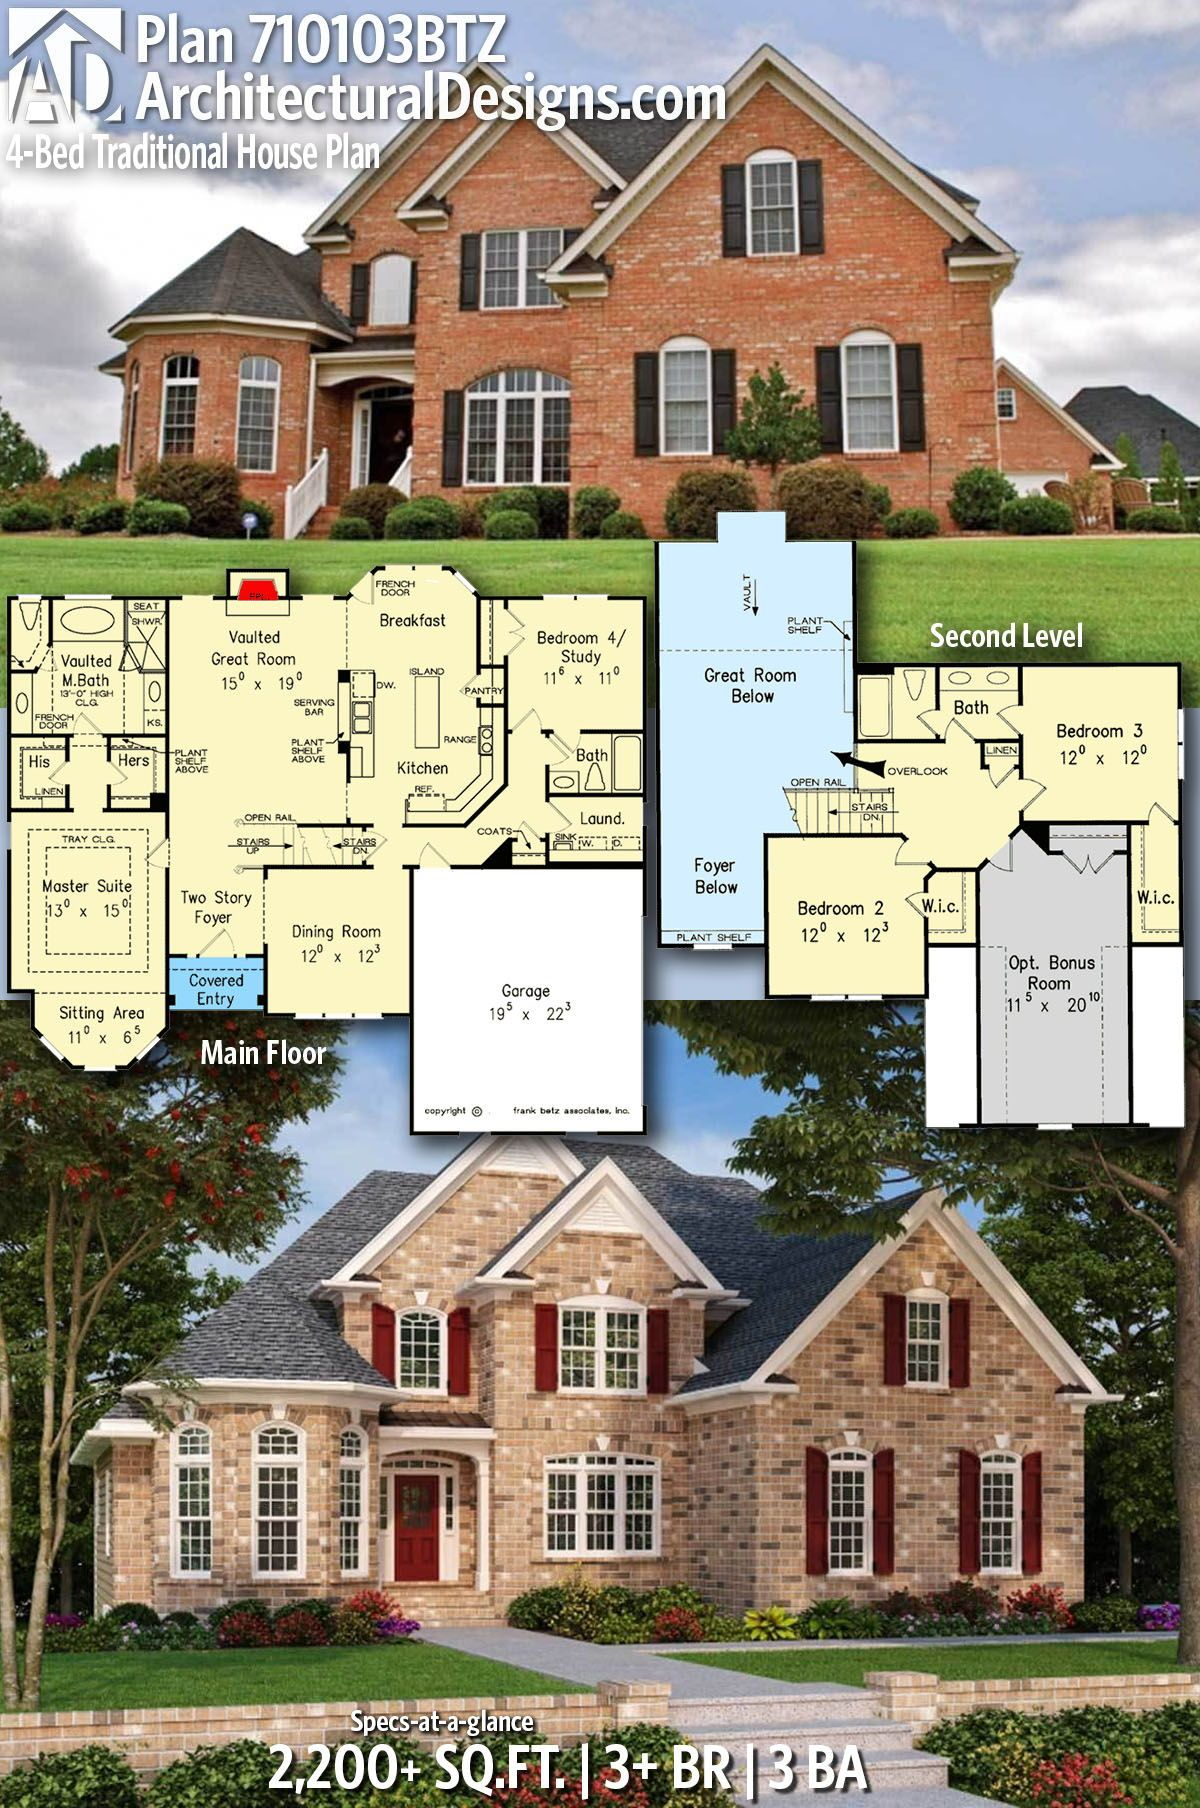 Photo of Plan 710103BTZ: 4-Bed Traditional House Plan with Brick Exterior and Office Option